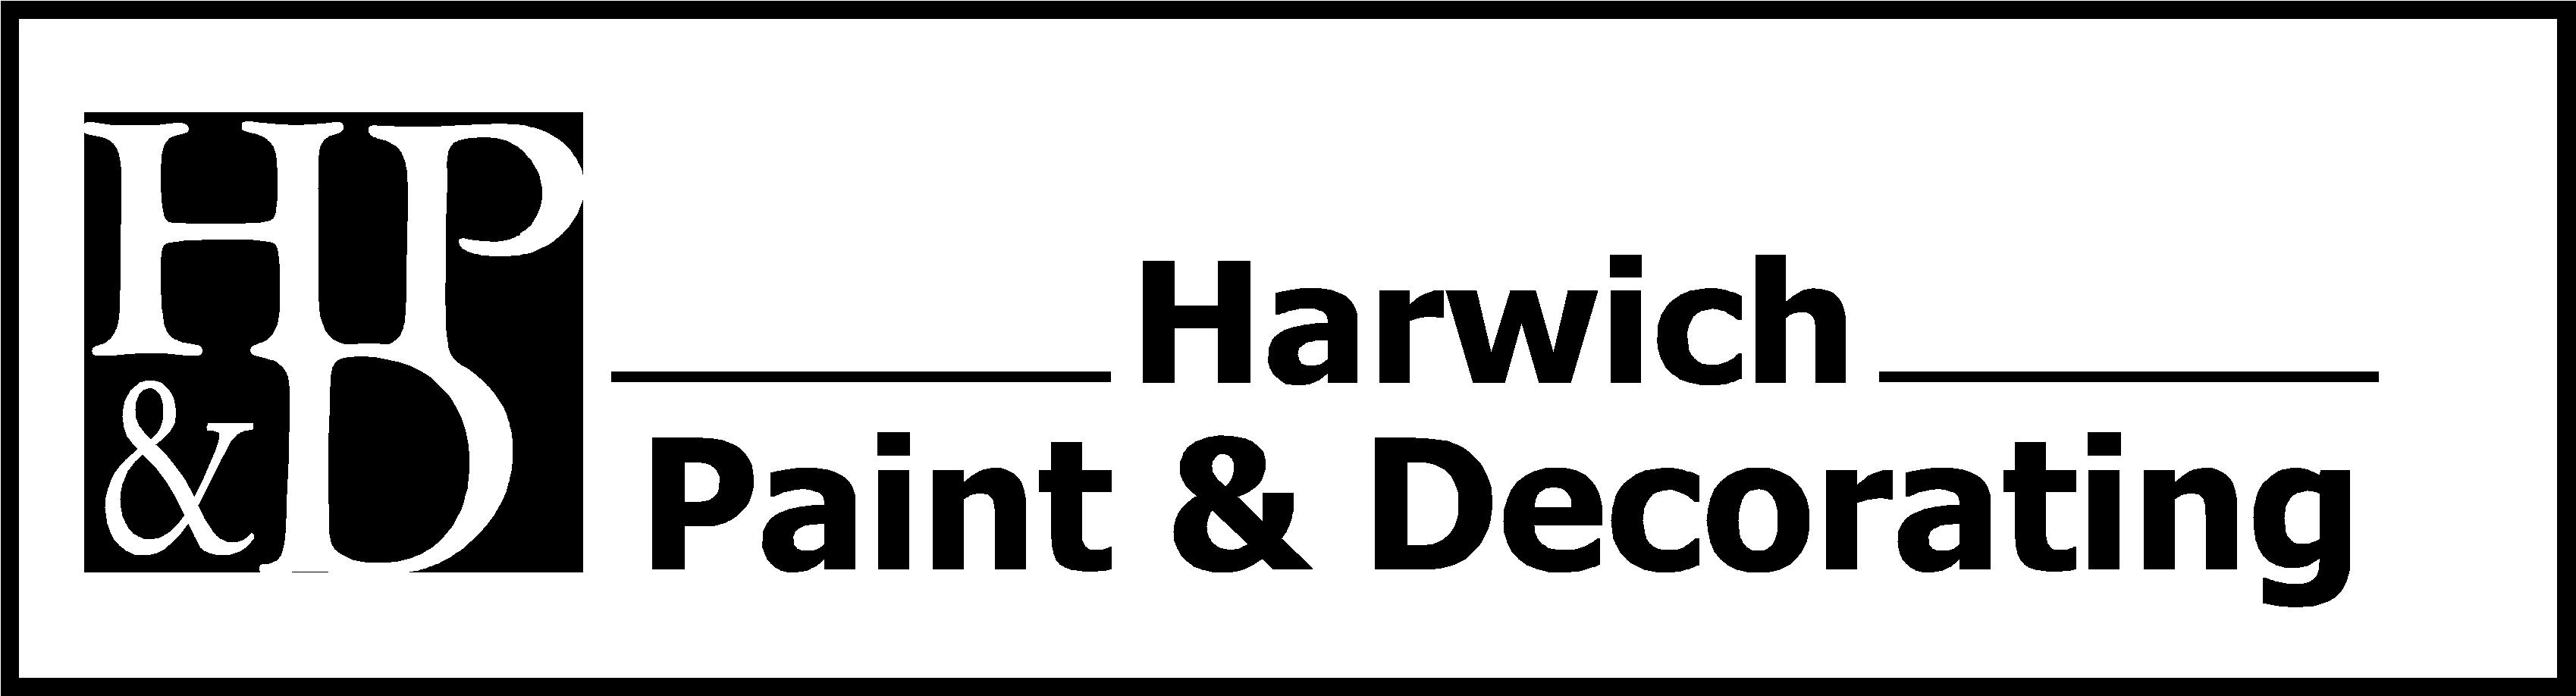 Harwich Chamber of Commerce Golf Tournament Bronze Sponsor Harwich Paint and Decorating